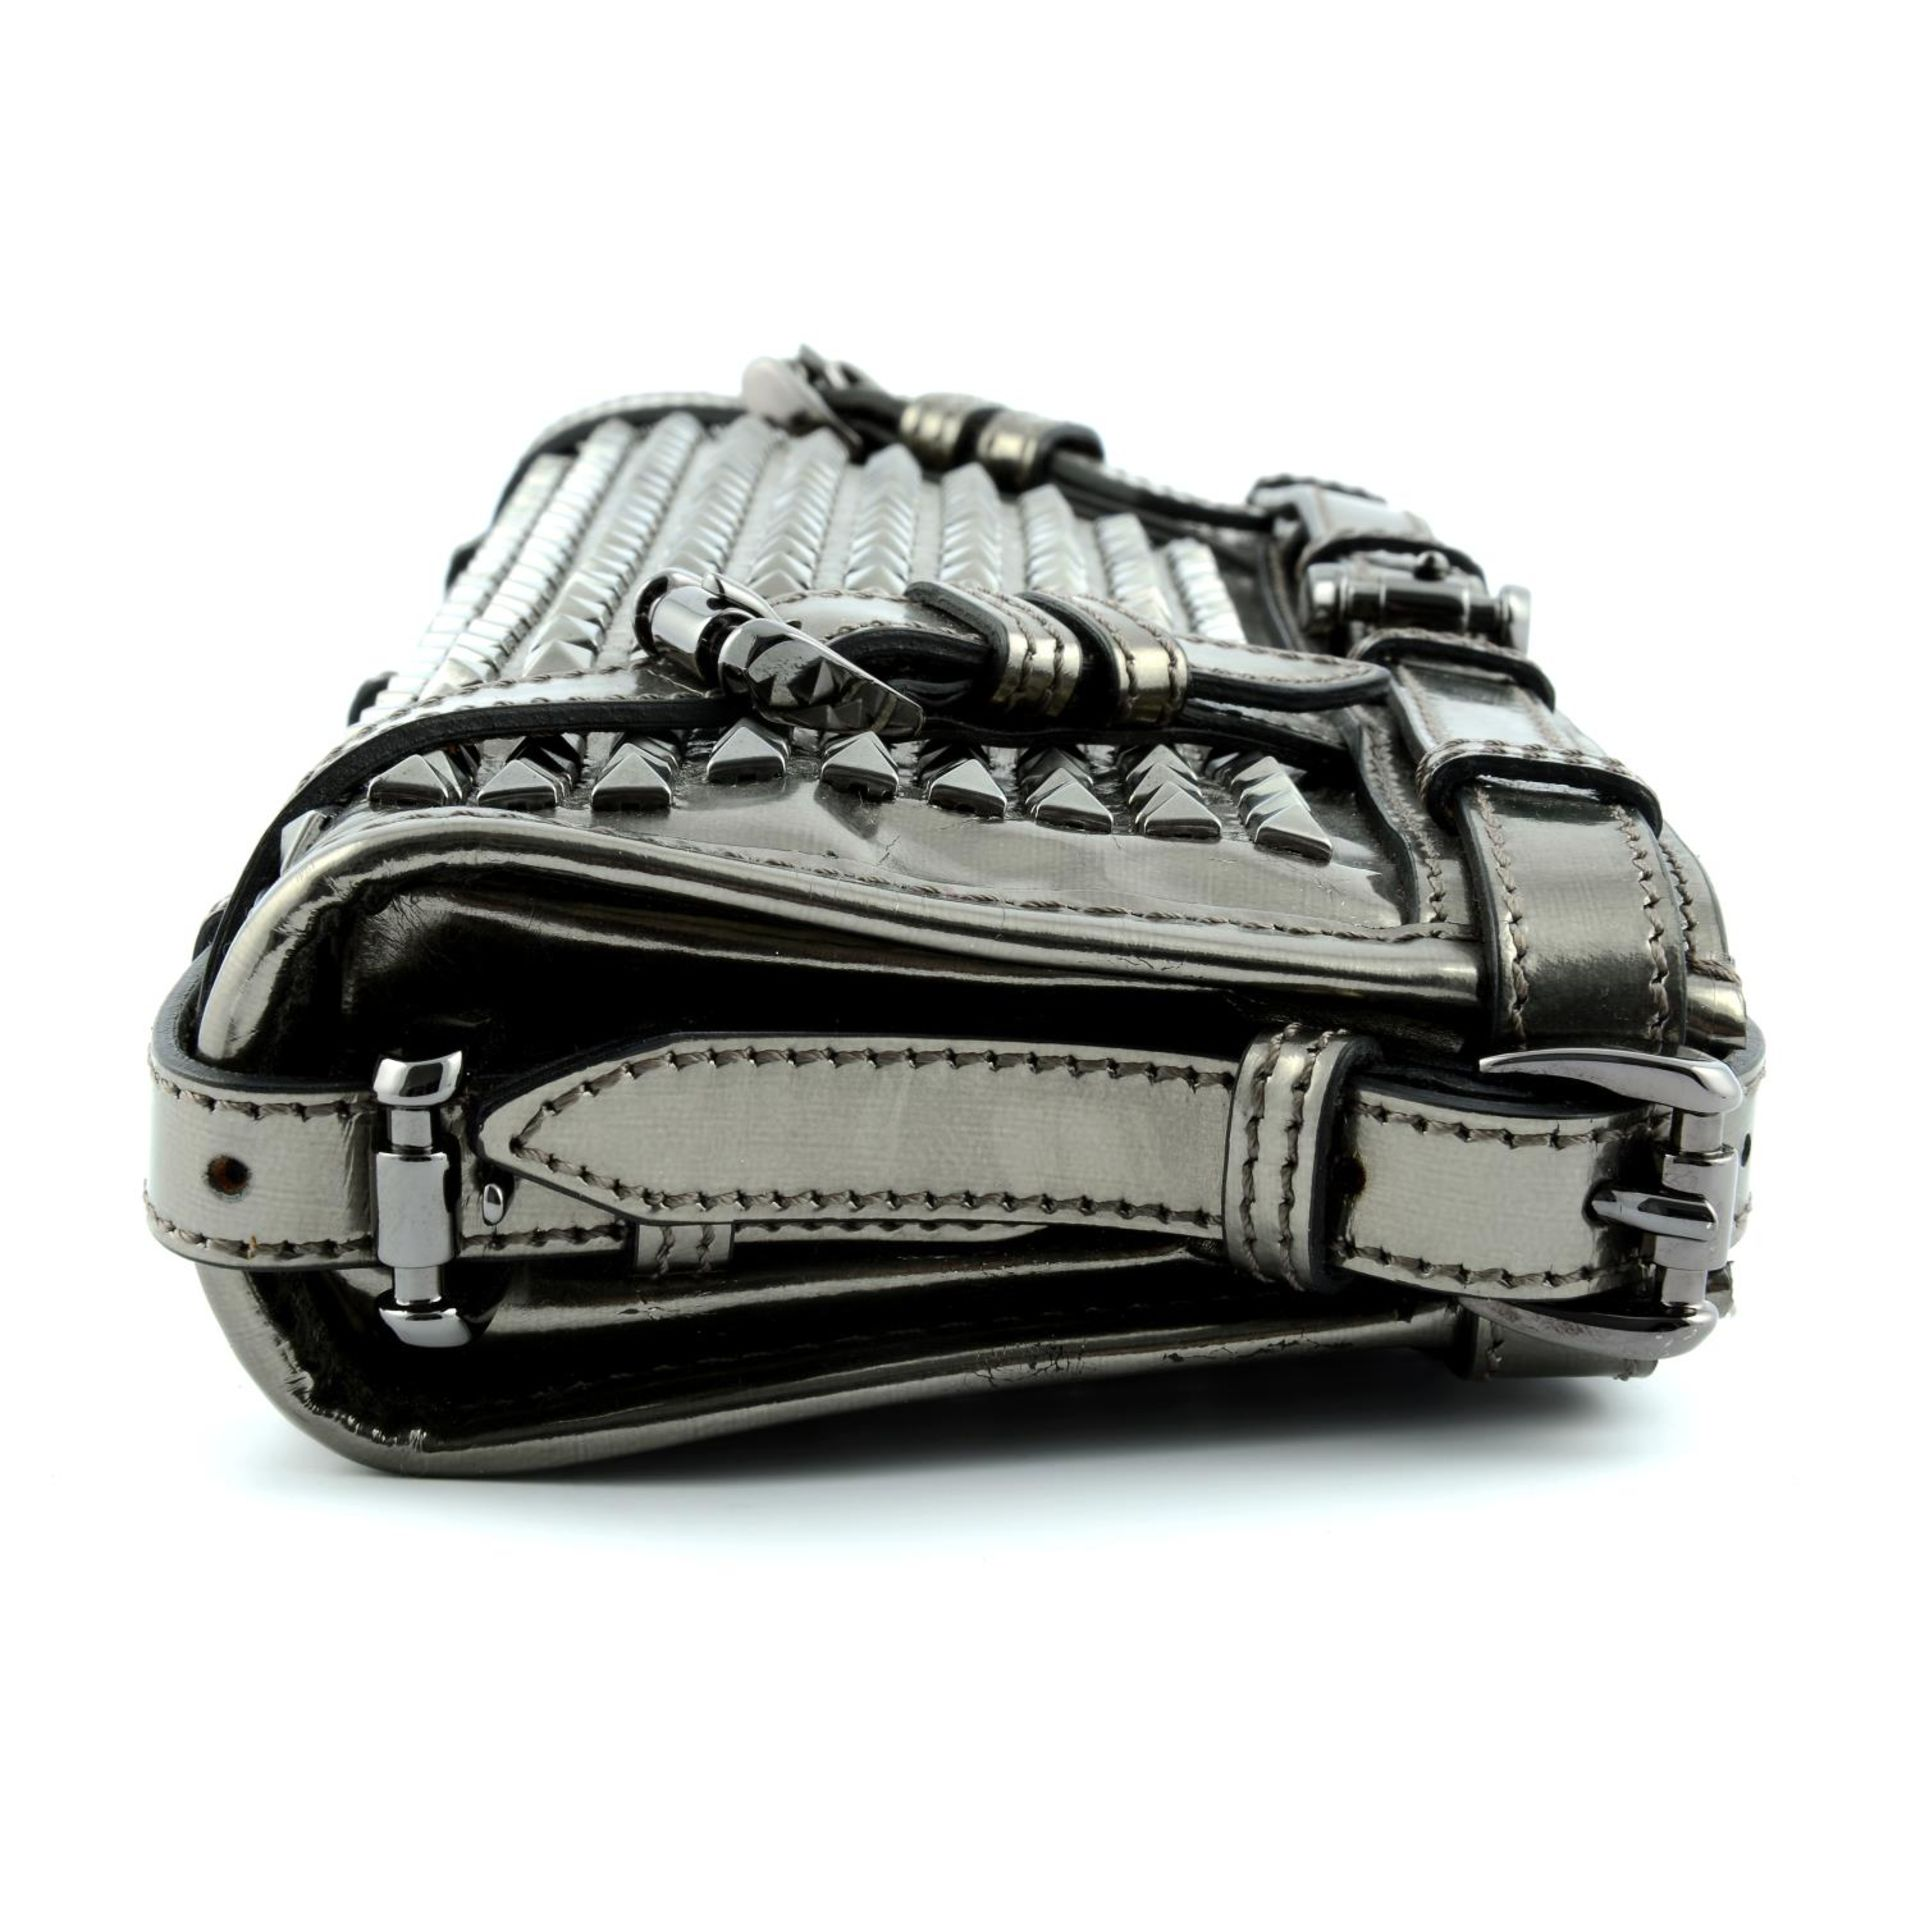 BURBERRY - a Hyde studded clutch. - Image 3 of 5